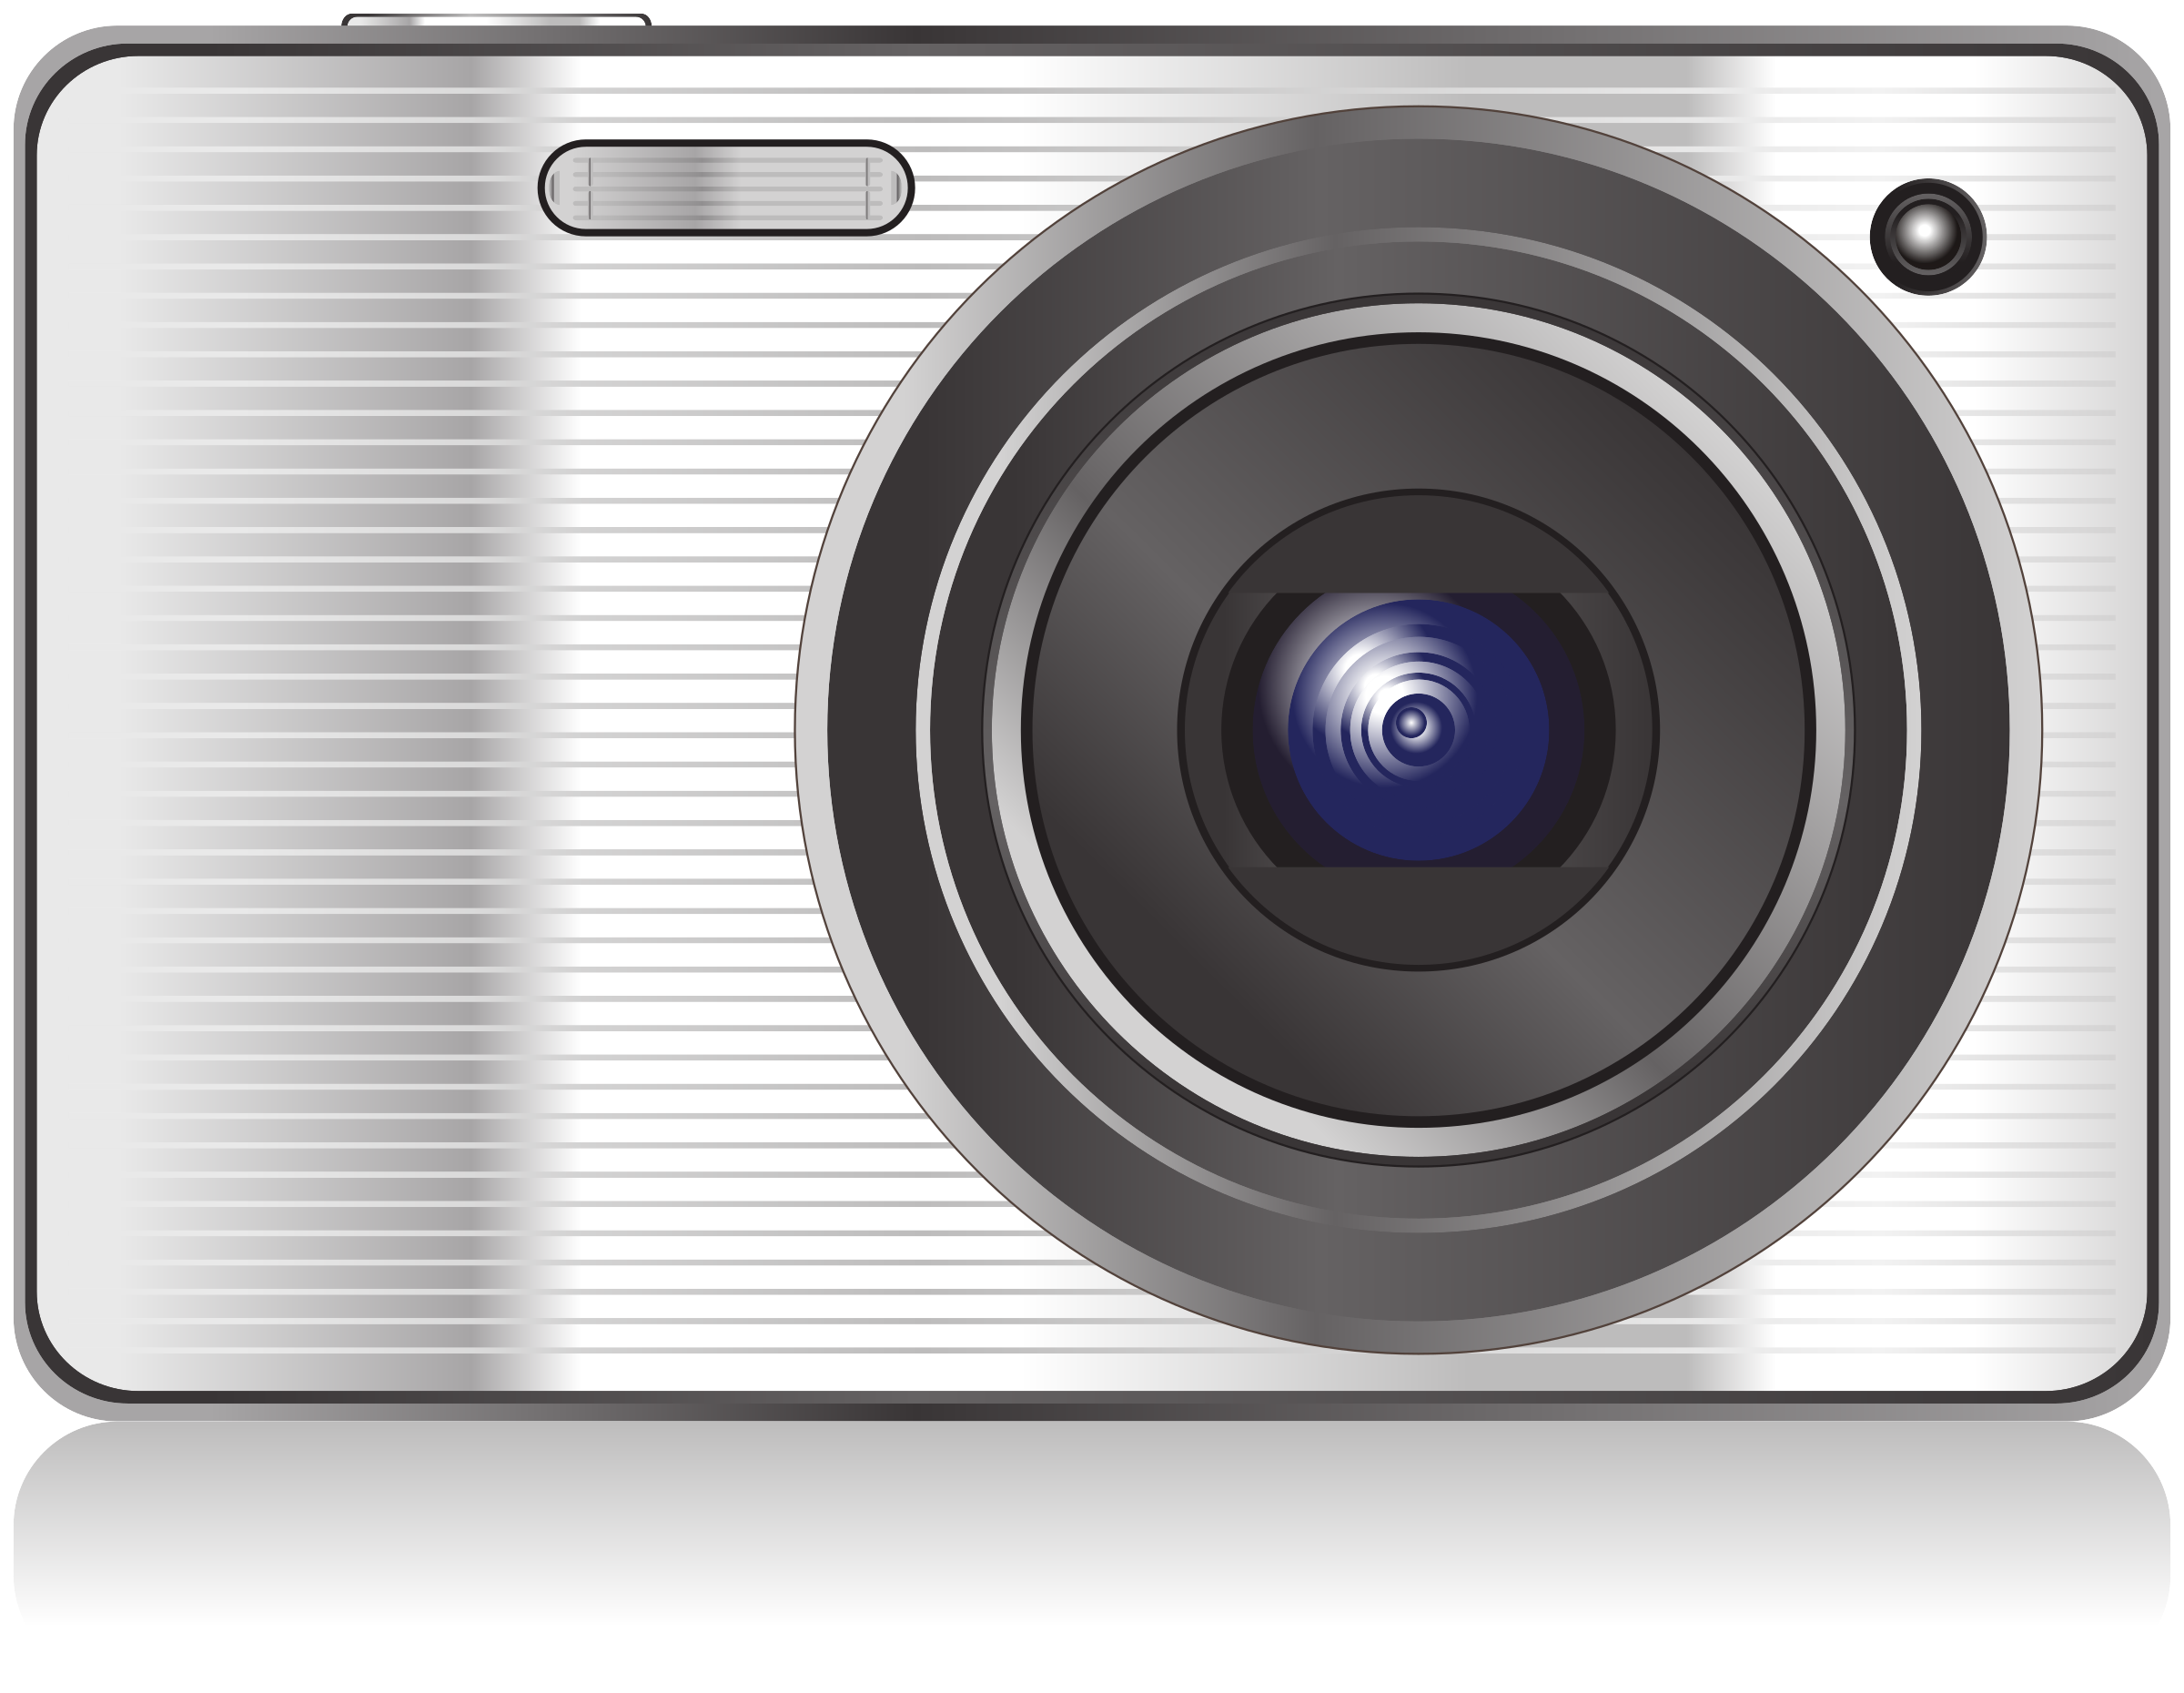 Digital point and shoot camera by Juhele